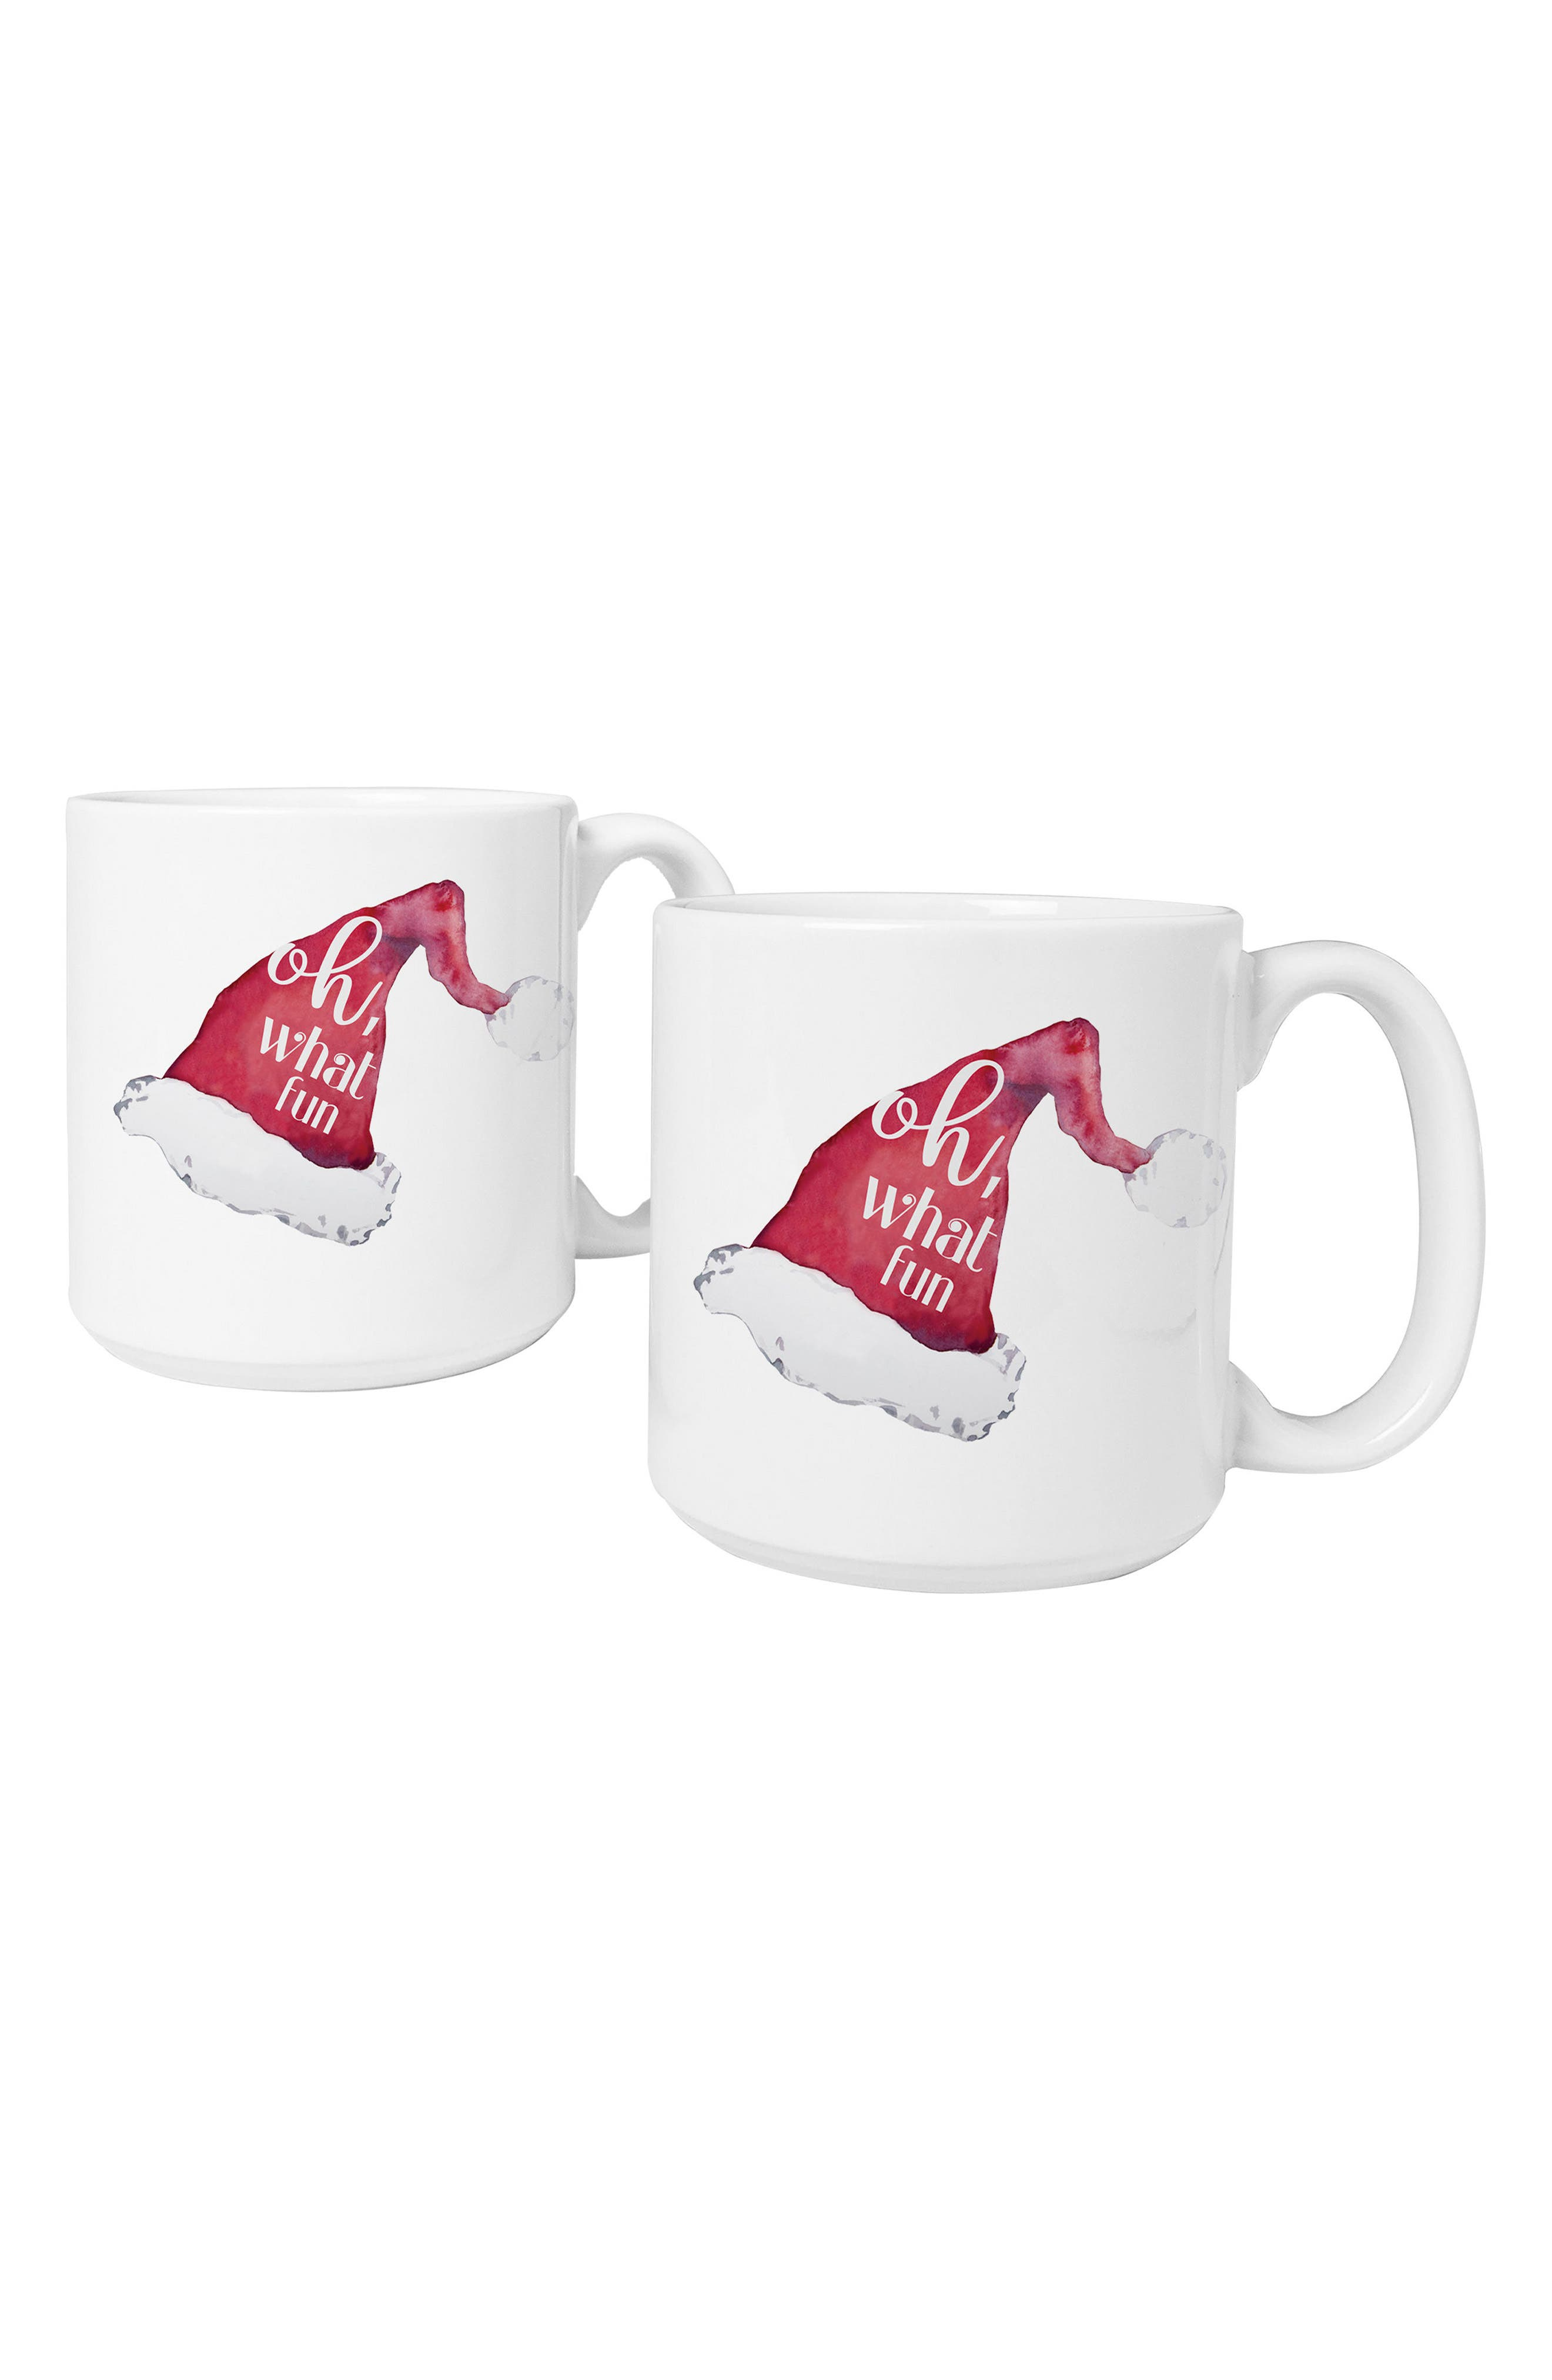 Oh What Fun Set of 2 Mugs,                             Main thumbnail 1, color,                             RED